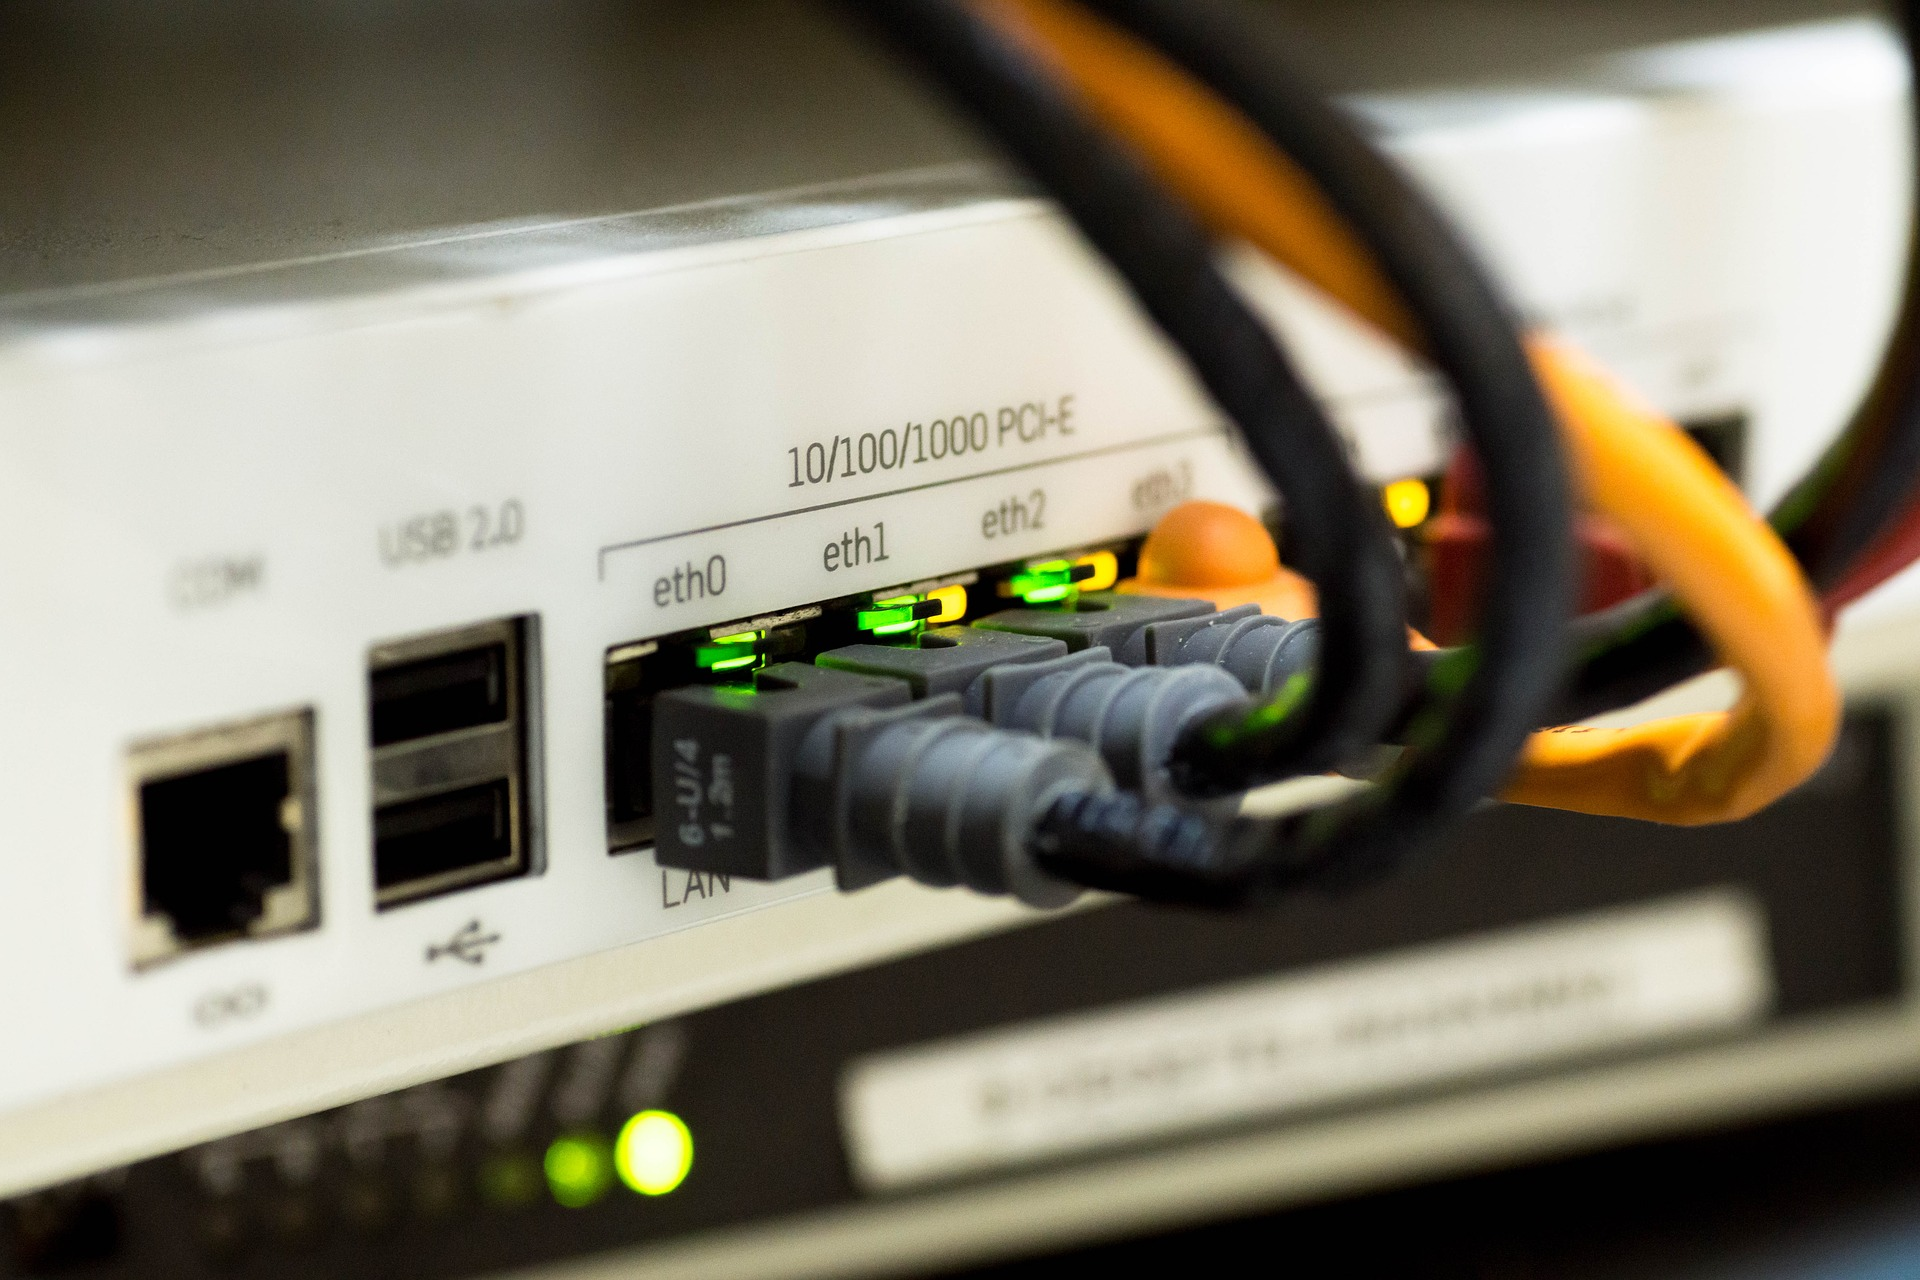 Wired and wireless networking installation